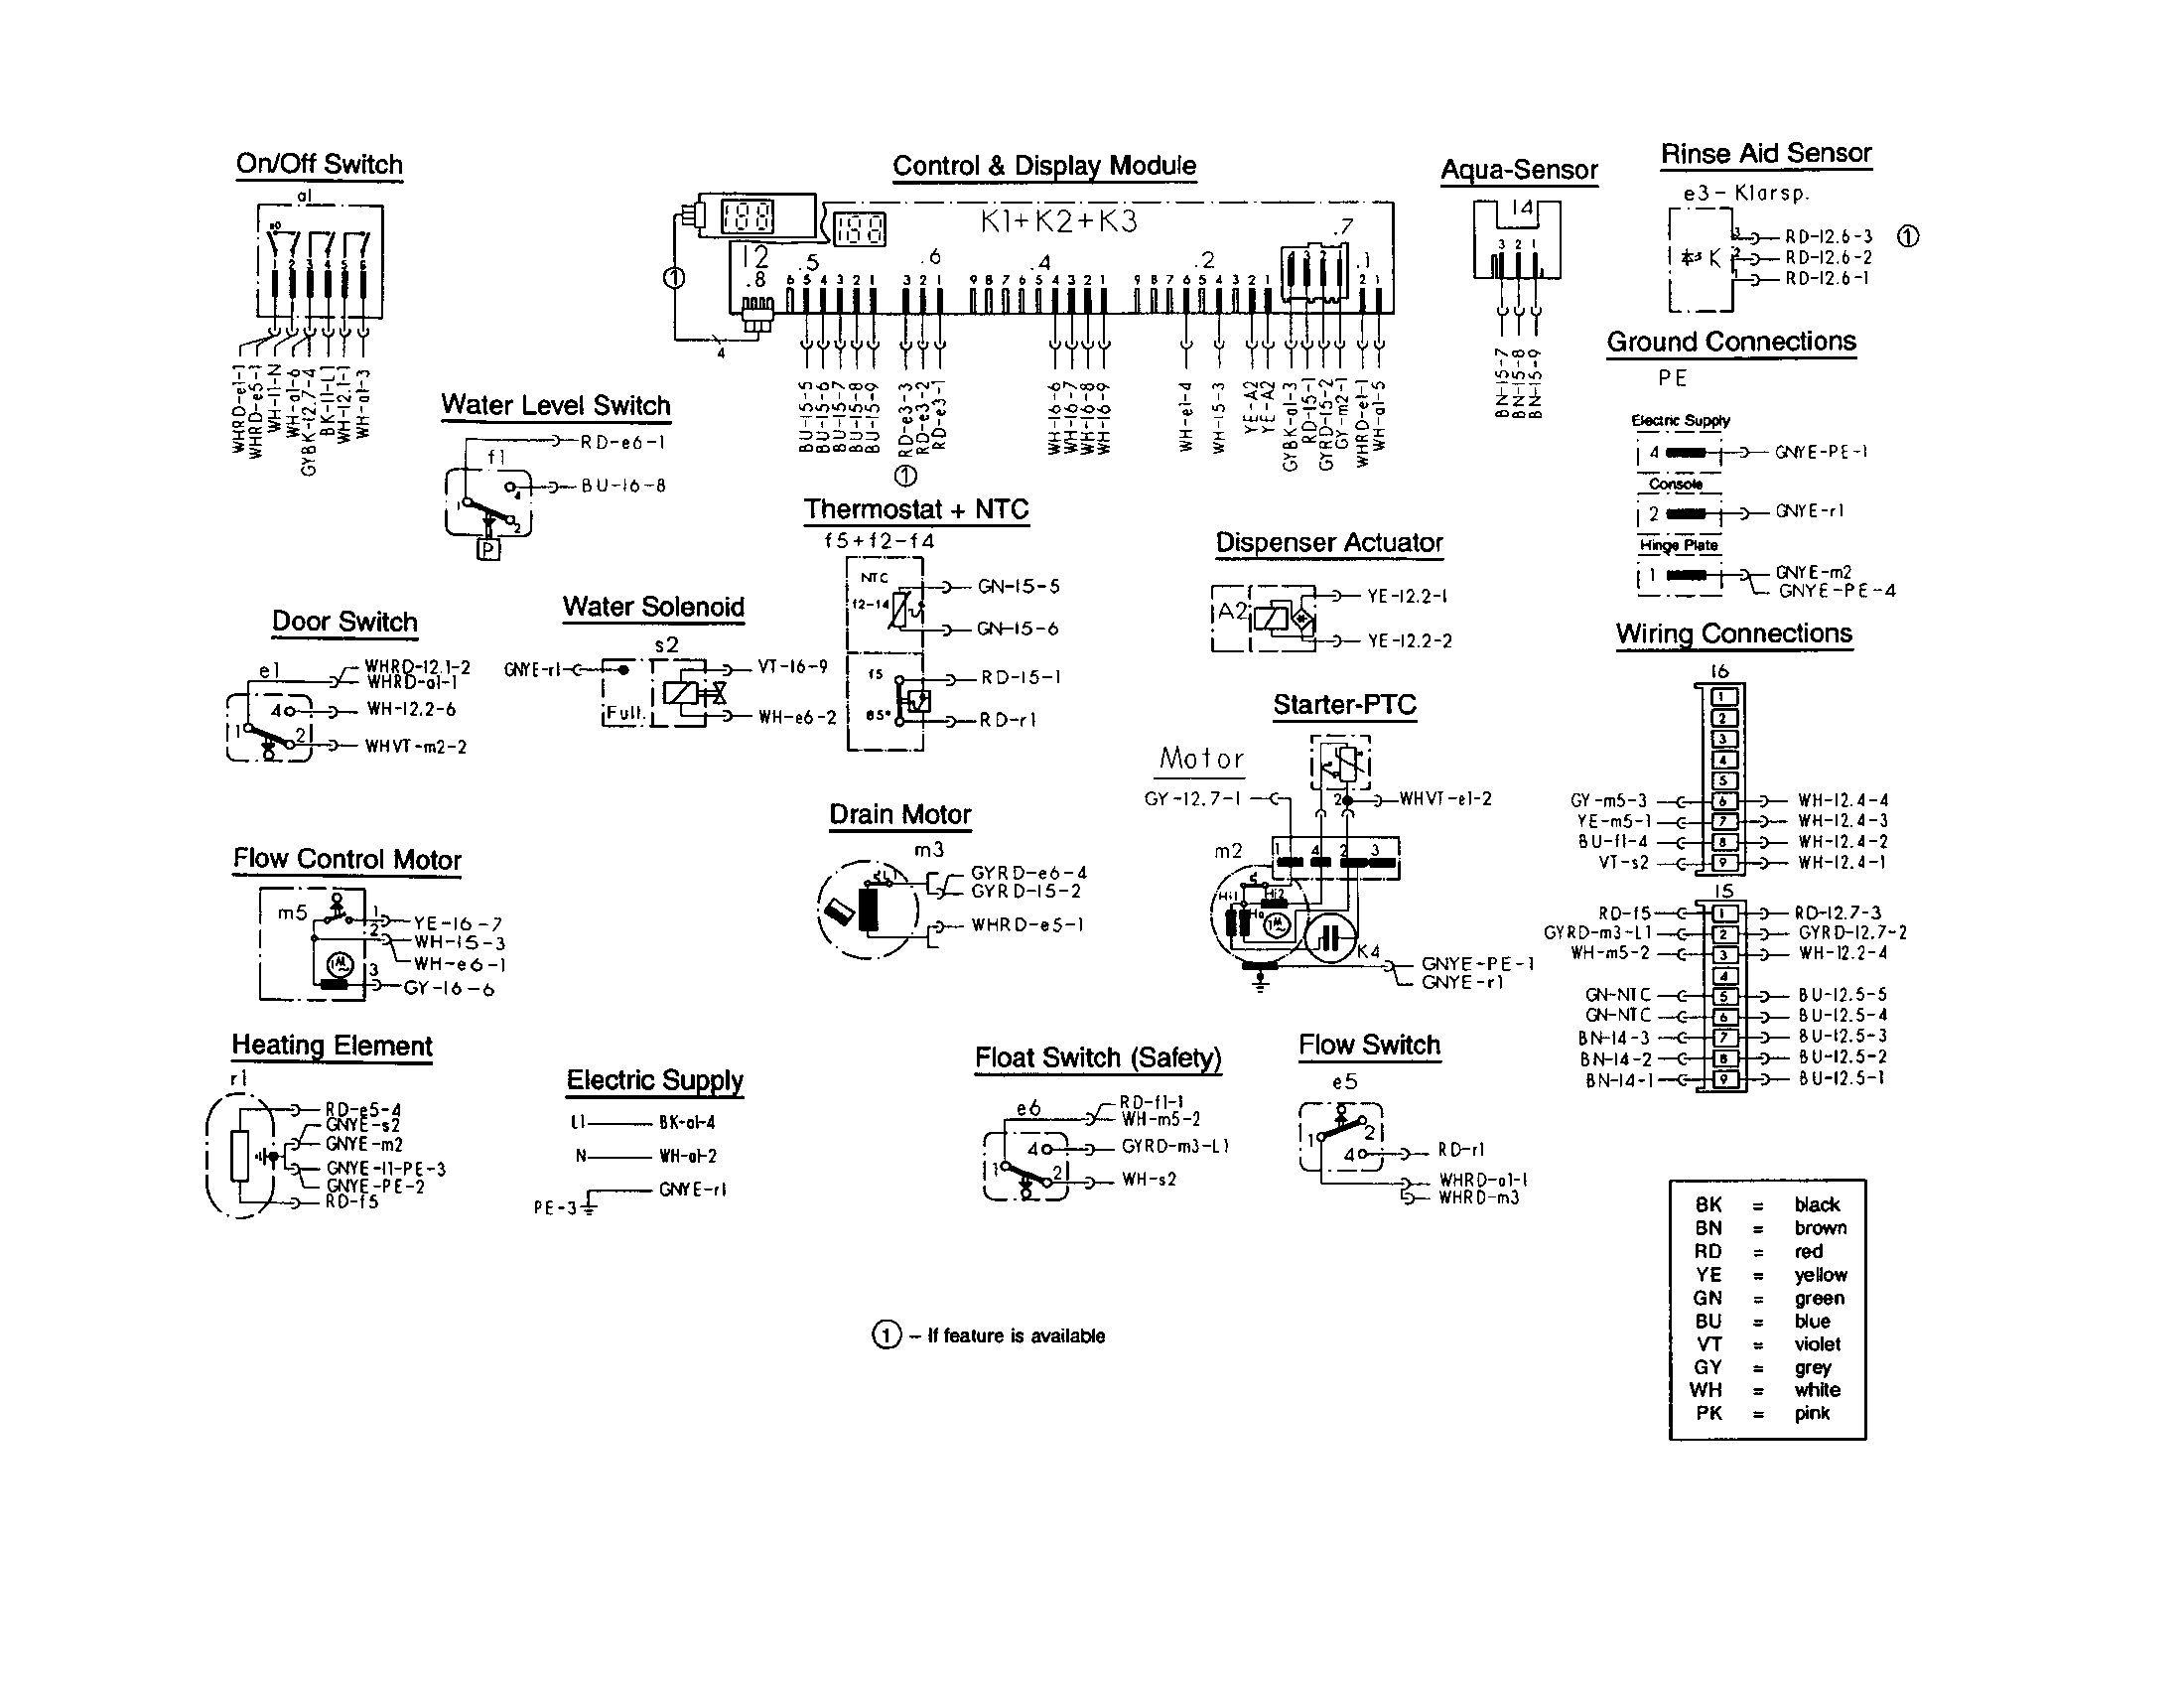 wiring diagram for frigidaire dishwasher the wiring diagram bosch dishwasher wiring diagram schematics and wiring diagrams wiring diagram